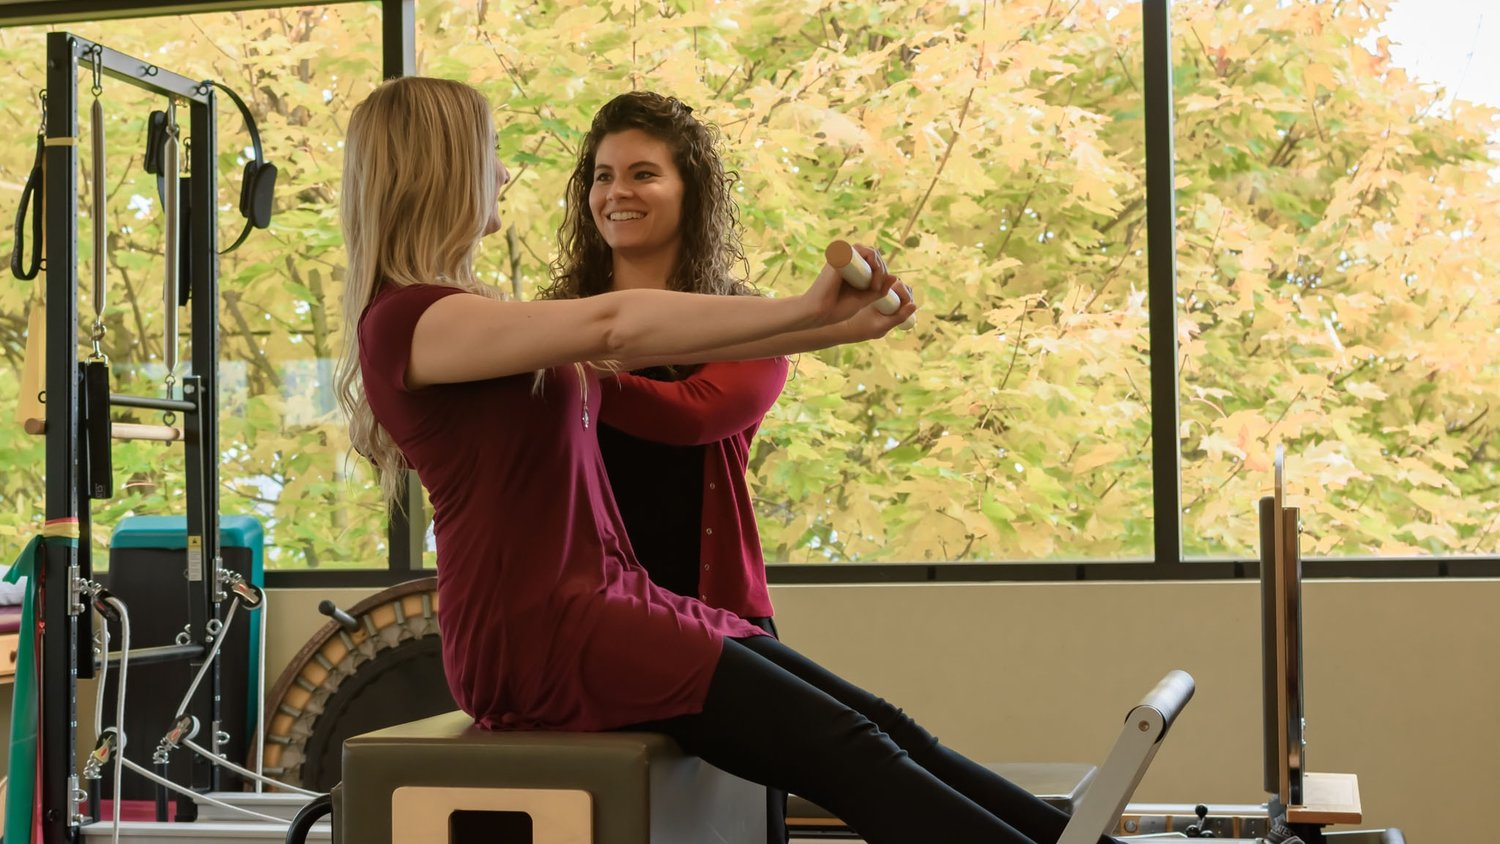 Health physical therapy womens - Laurelhurst_womenshealthbanner Jpg Services Physical Therapy Women S Health